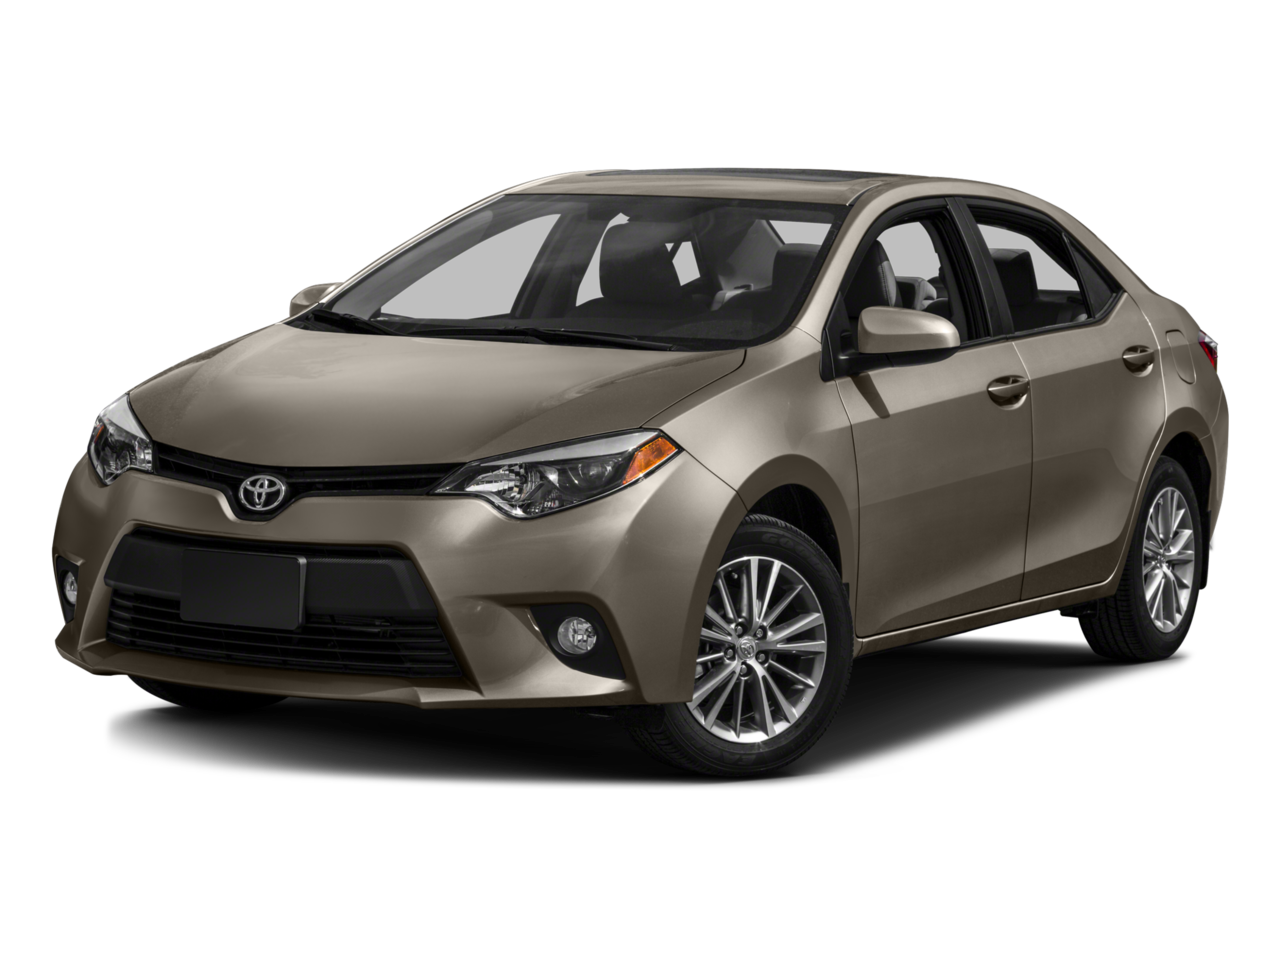 2016 Toyota Model Overviews | Krause Toyota Serving Allentown, PA